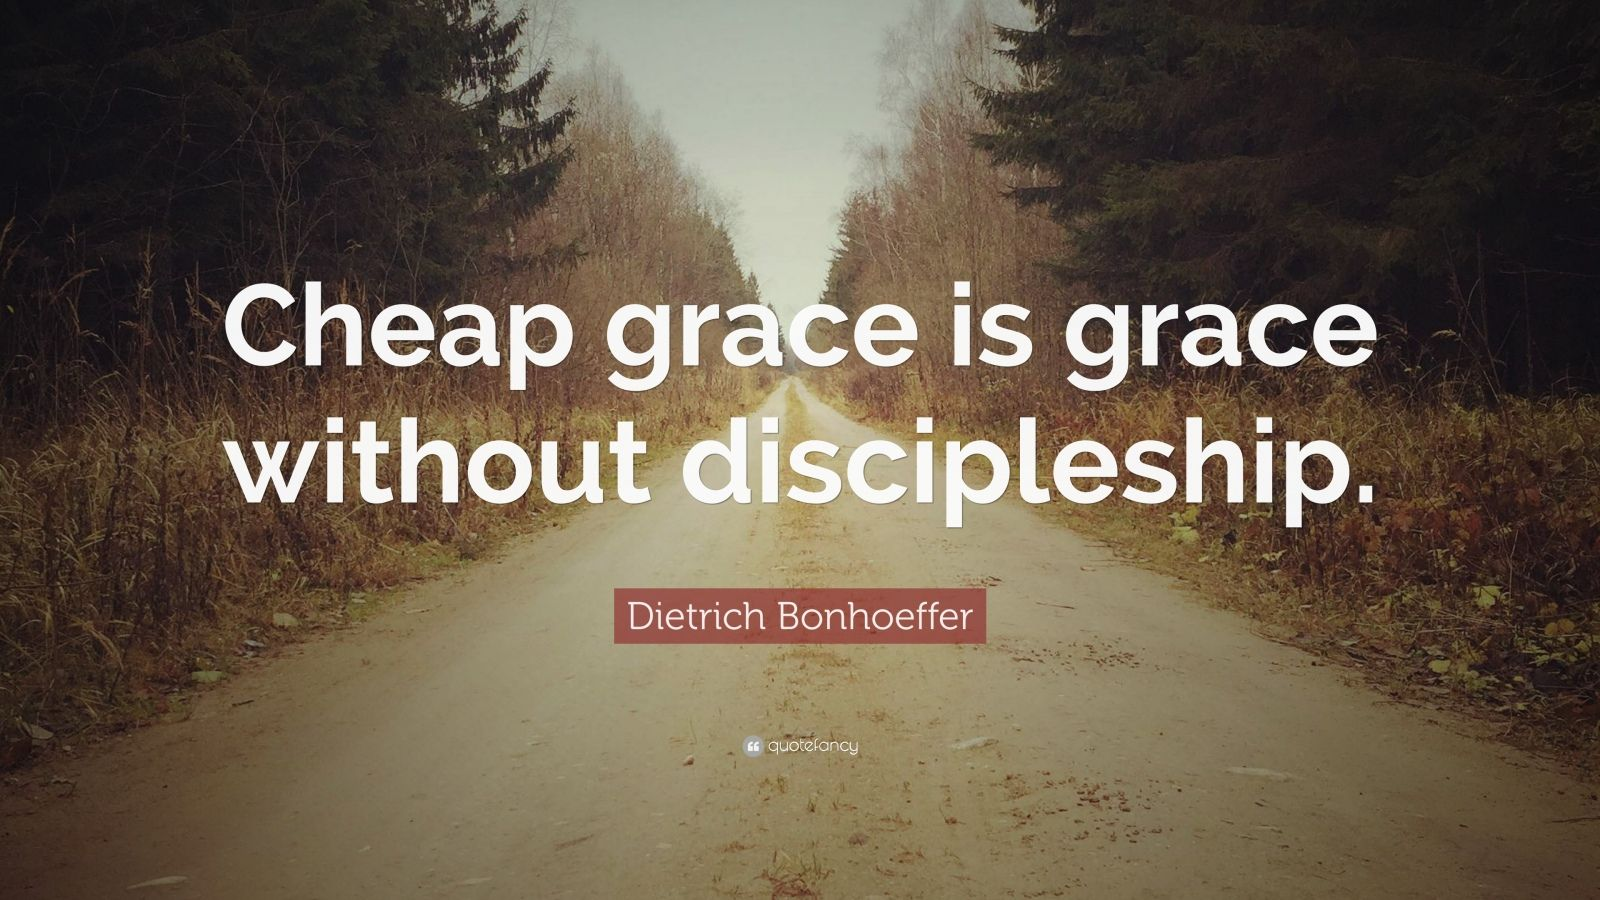 Wallpapers Of Christian Quotes Dietrich Bonhoeffer Quote Cheap Grace Is Grace Without